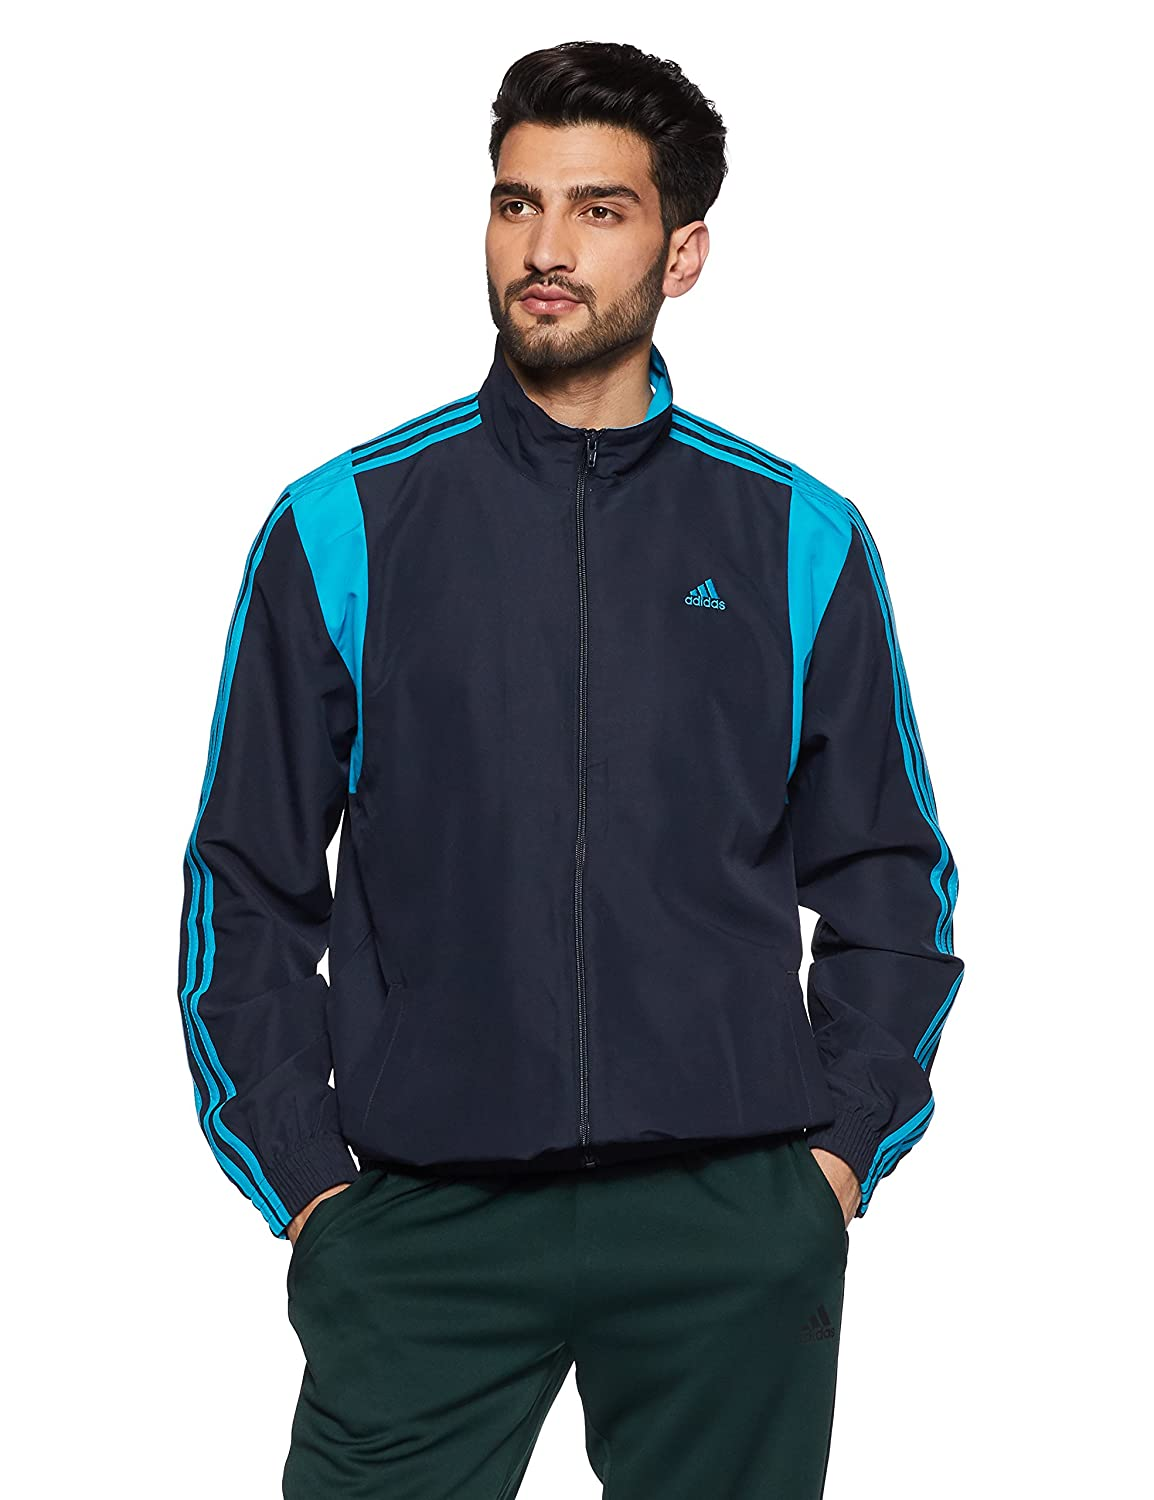 Adidas Men's Synthetic Track Jacket